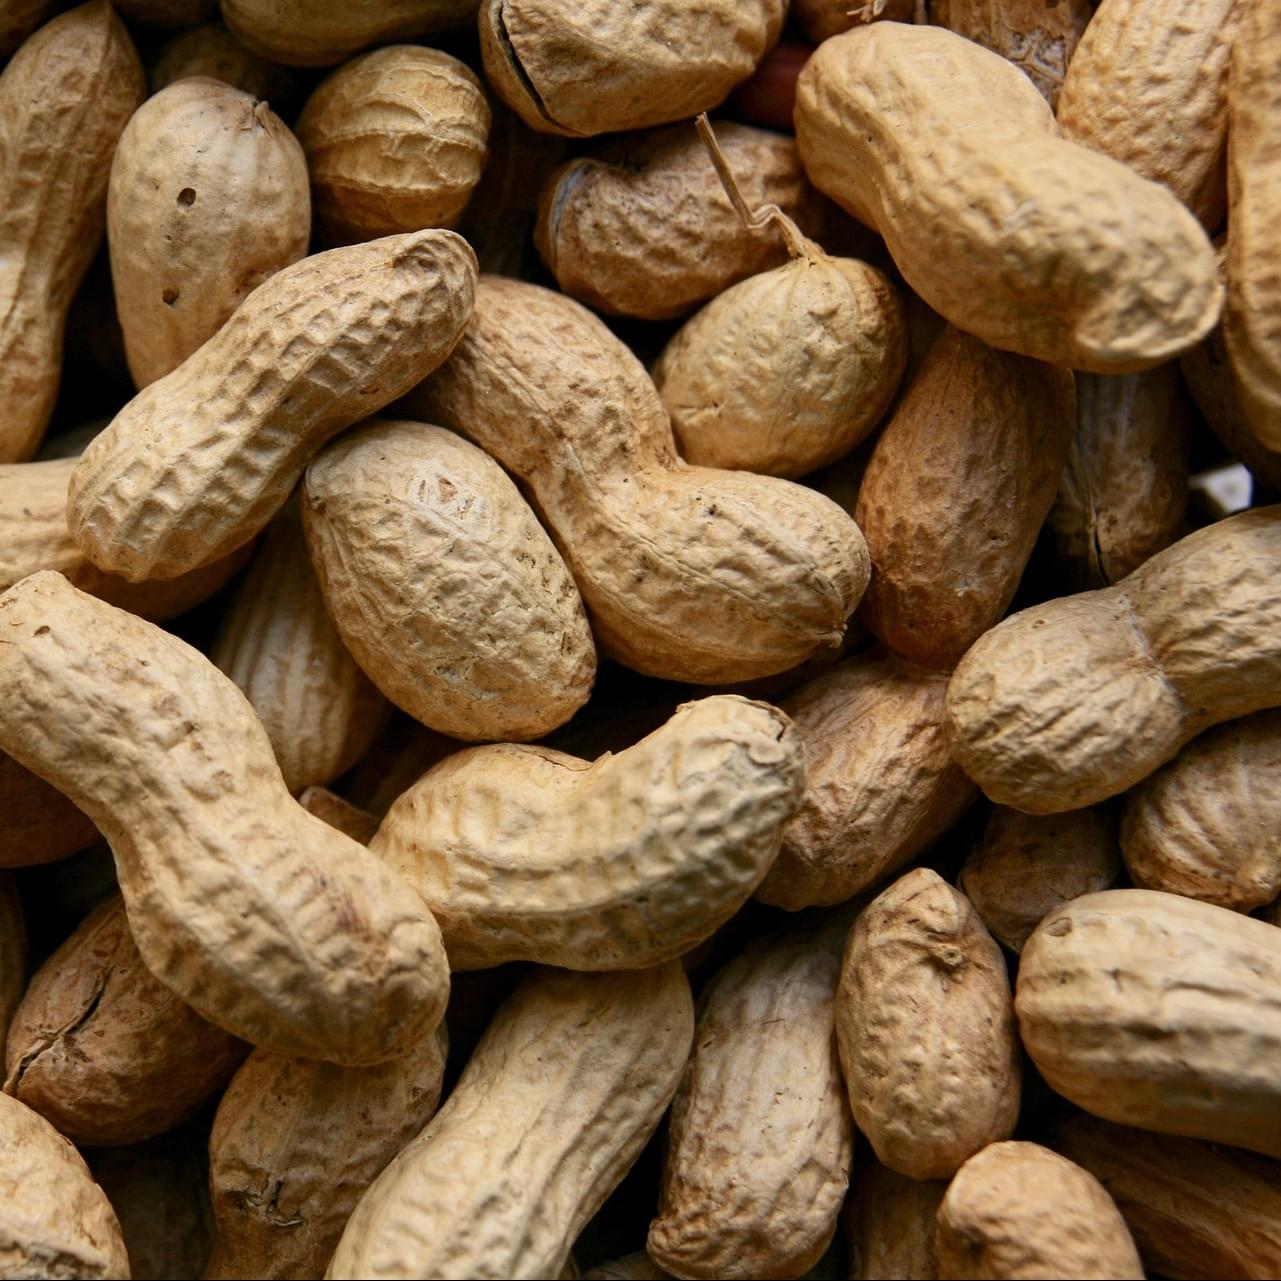 New treatment for peanut allergies!